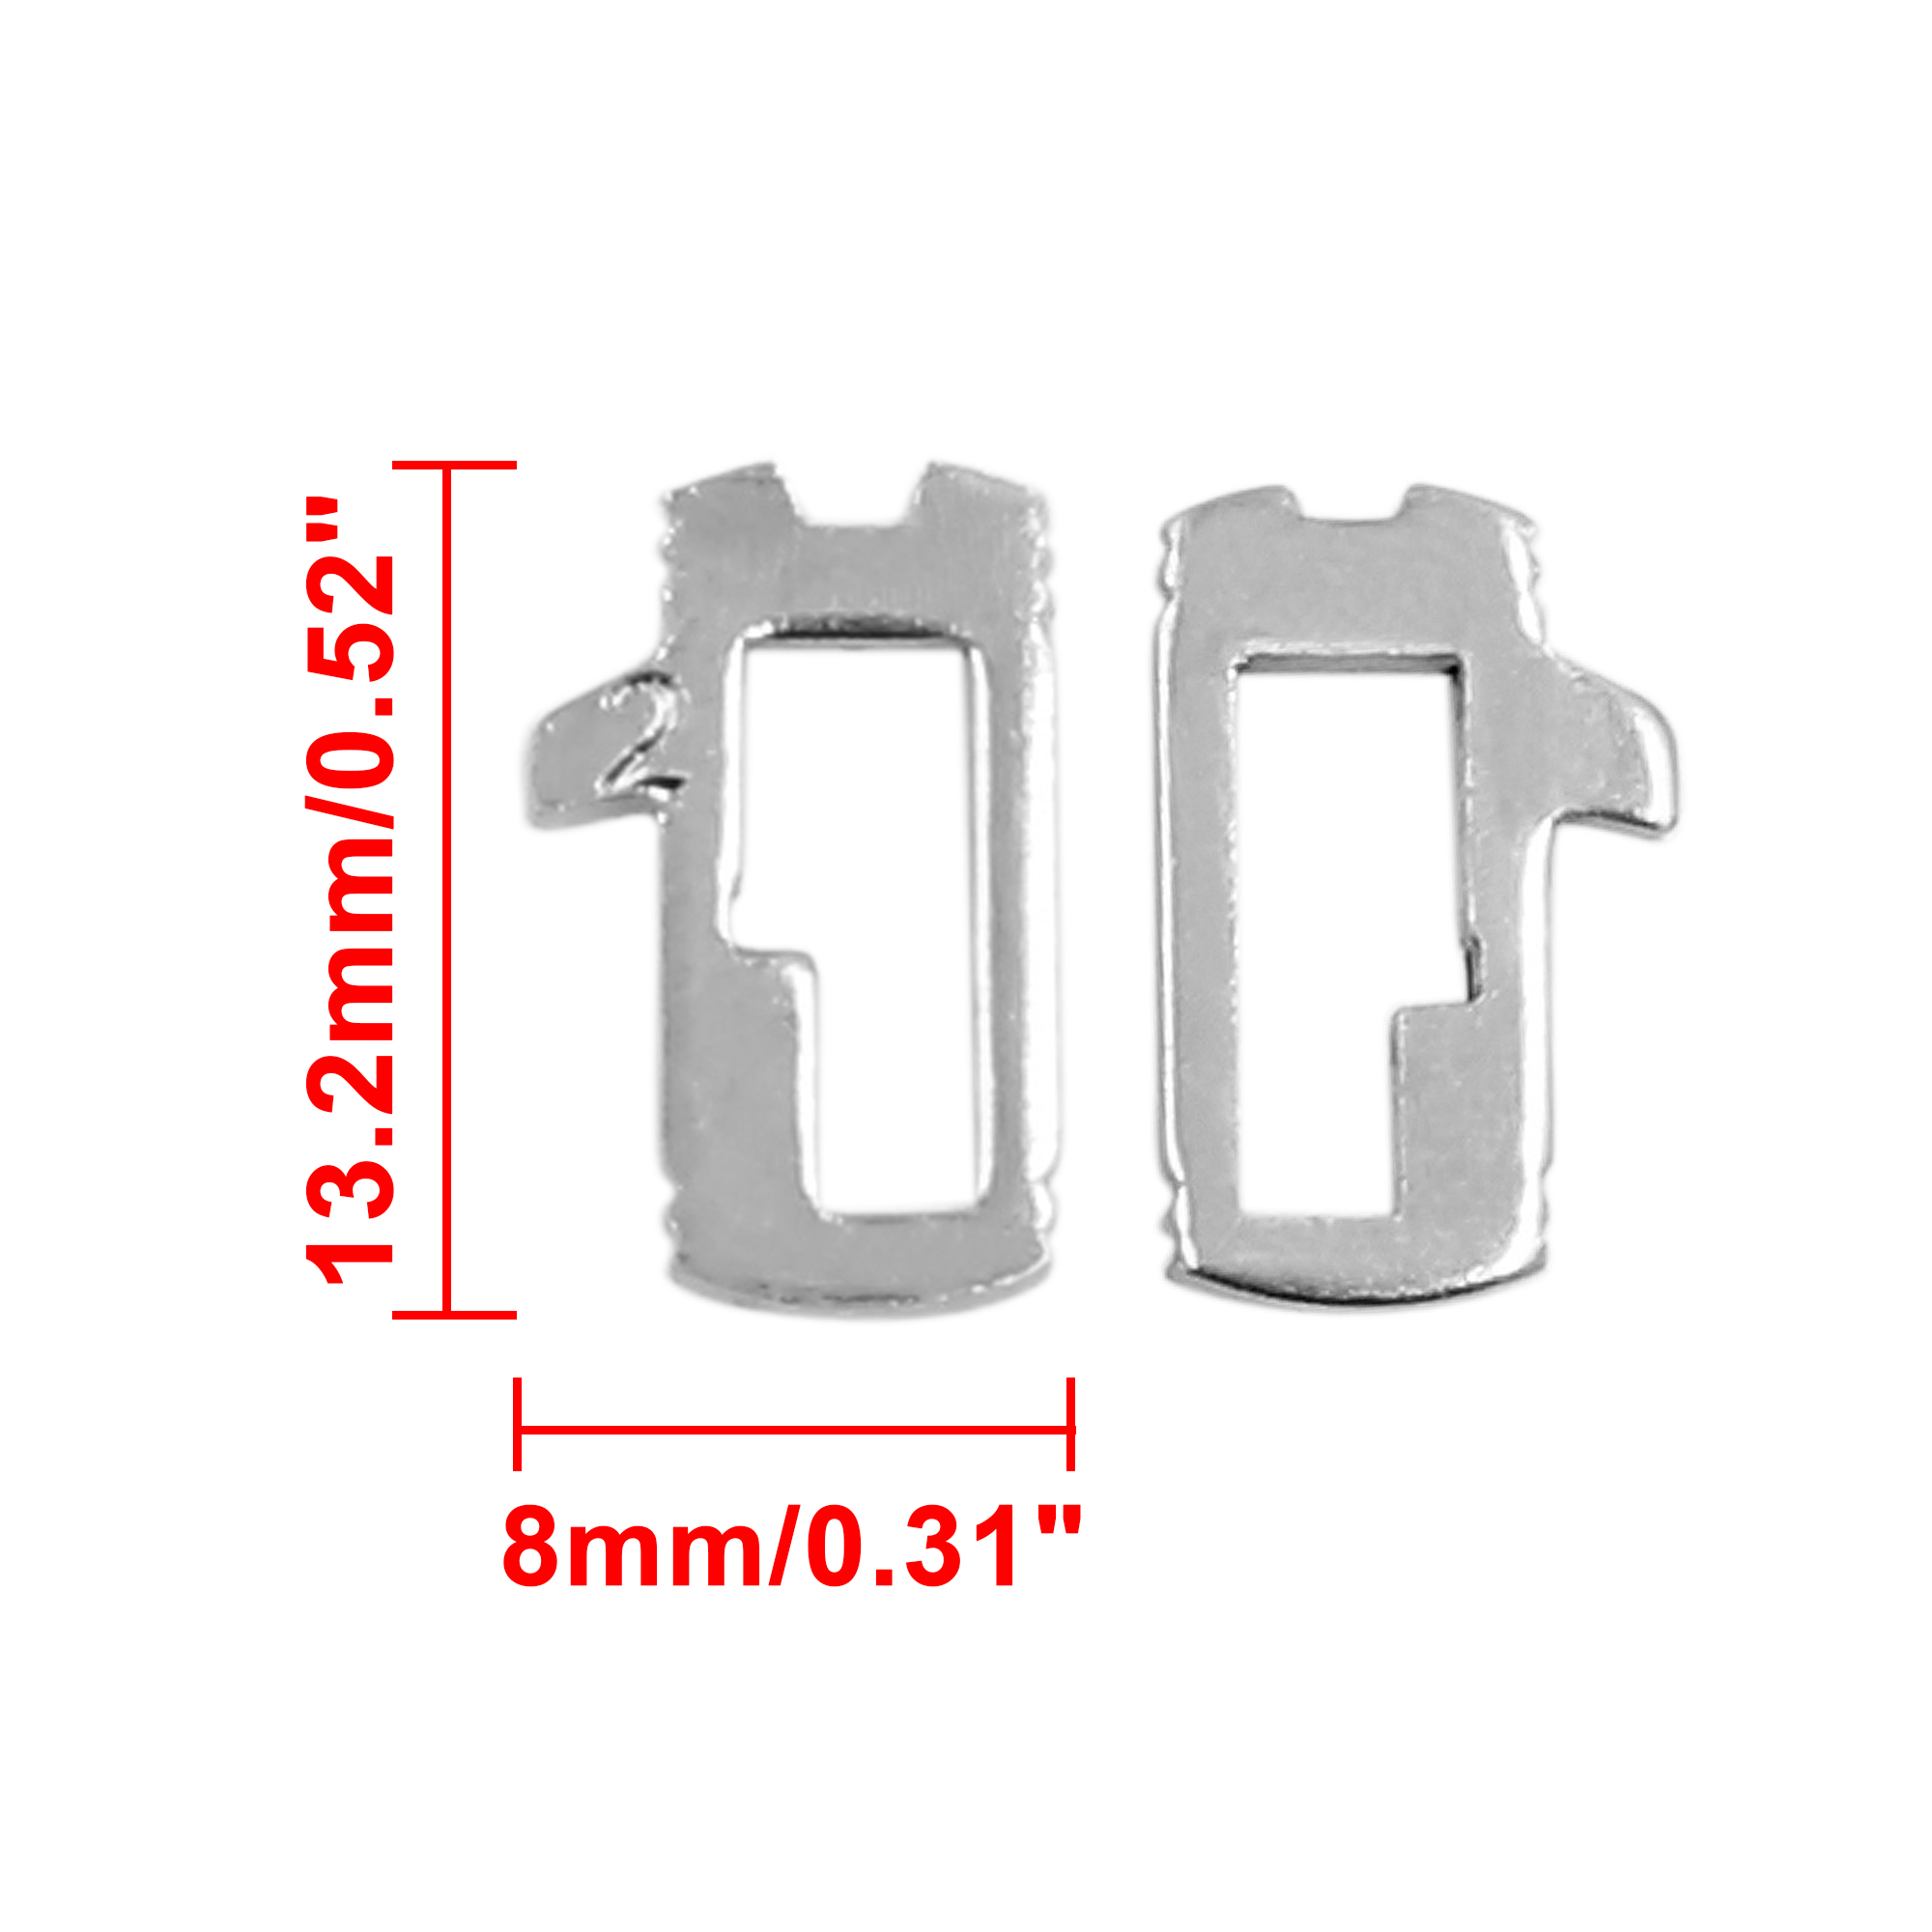 20pcs Ignition Lock Cylinder Reed Car Locking Plate Repair Tool for Ford Focus - image 1 of 2